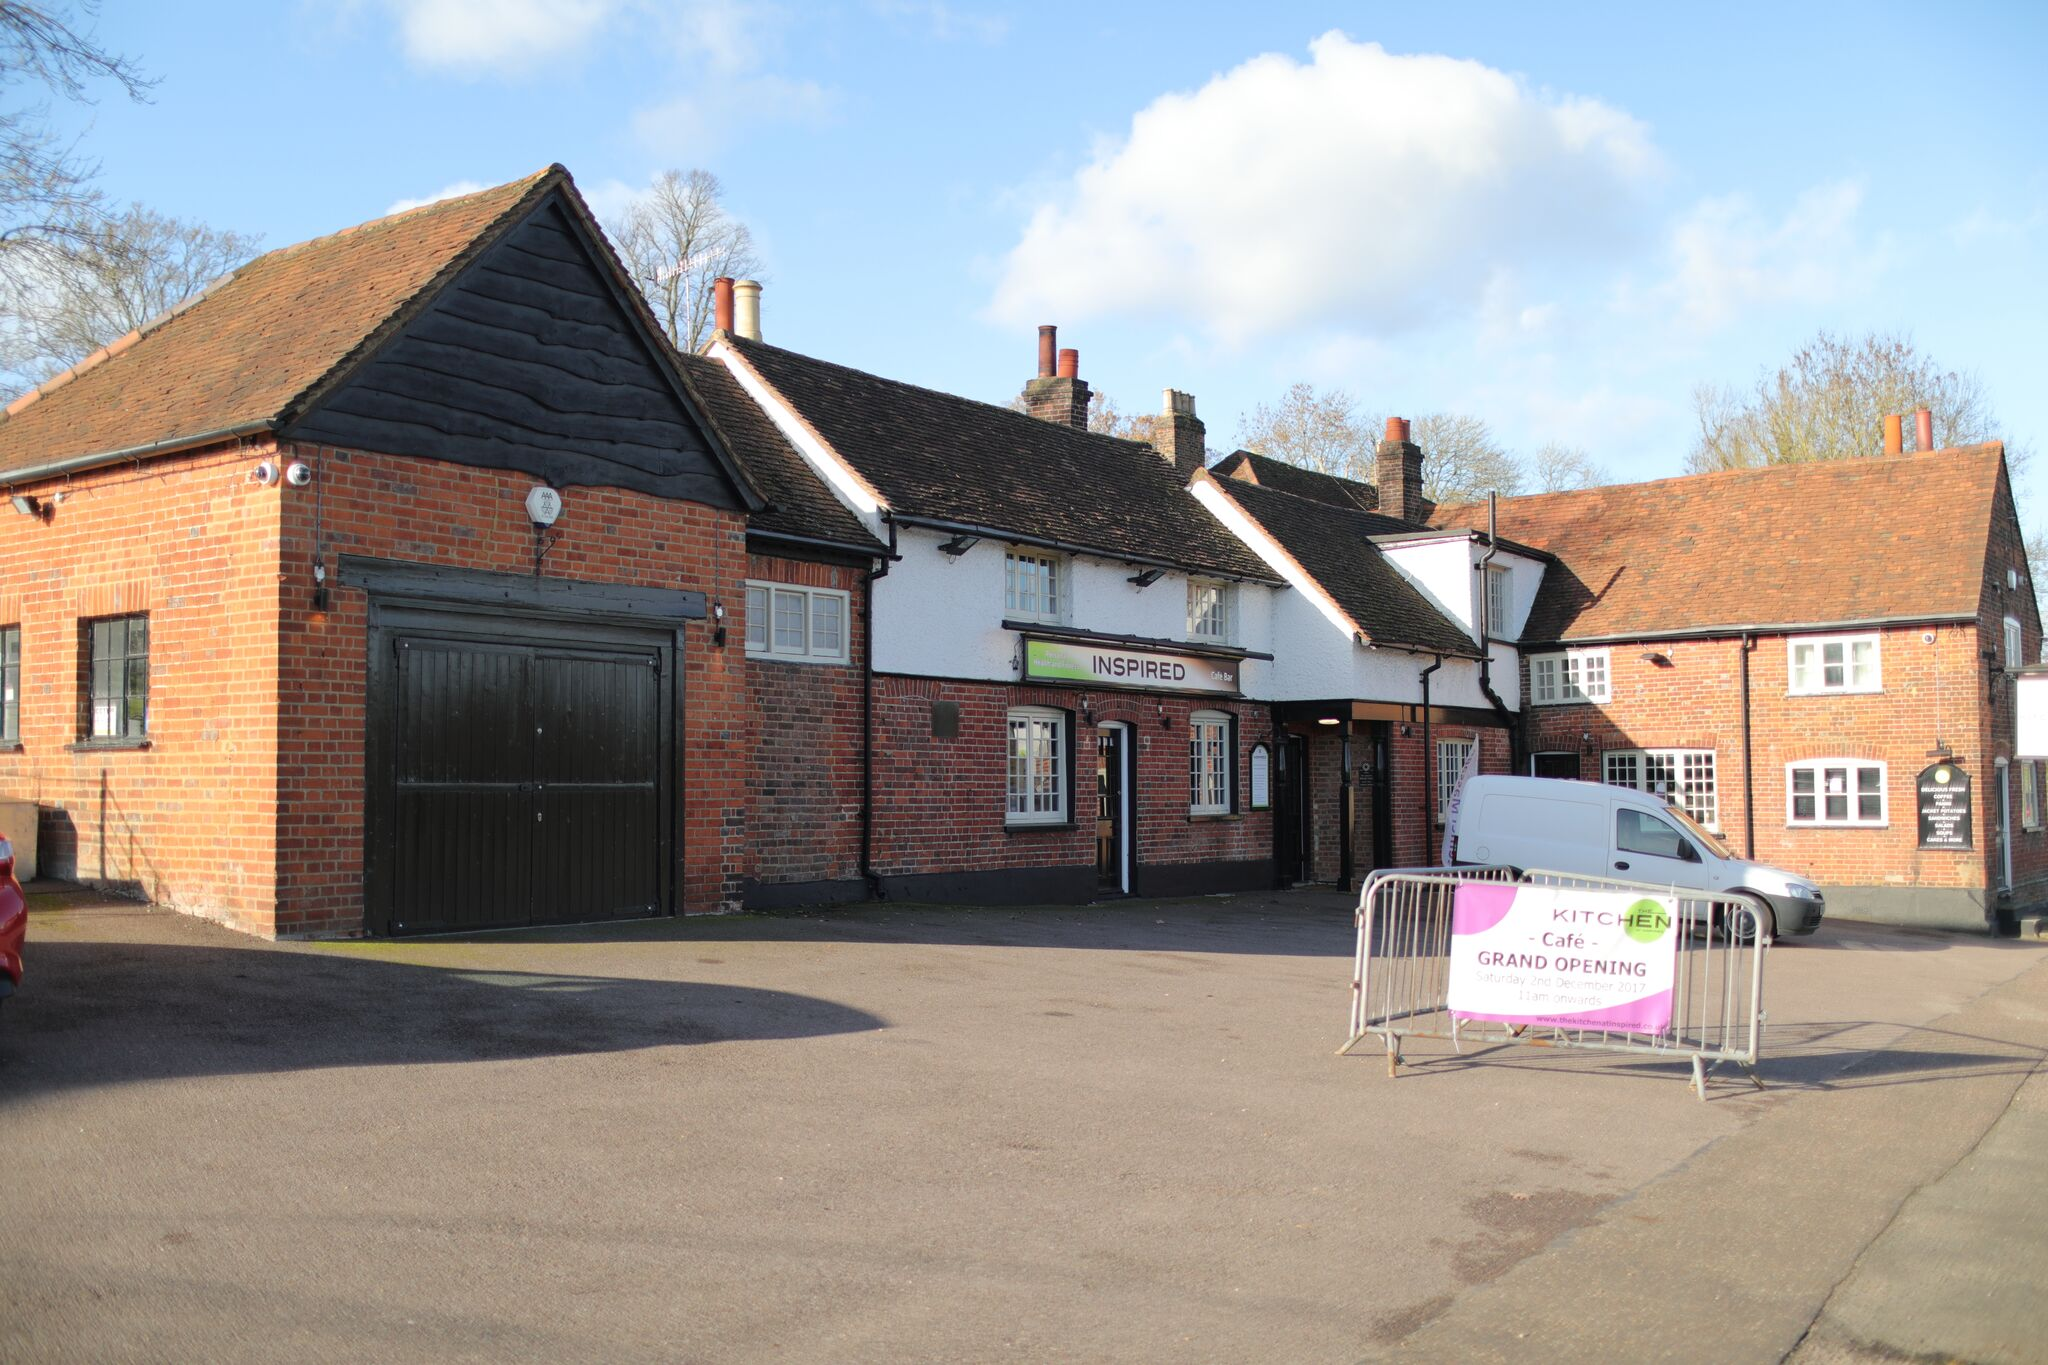 Inspired Wellbeing Centre building in Kings Langley